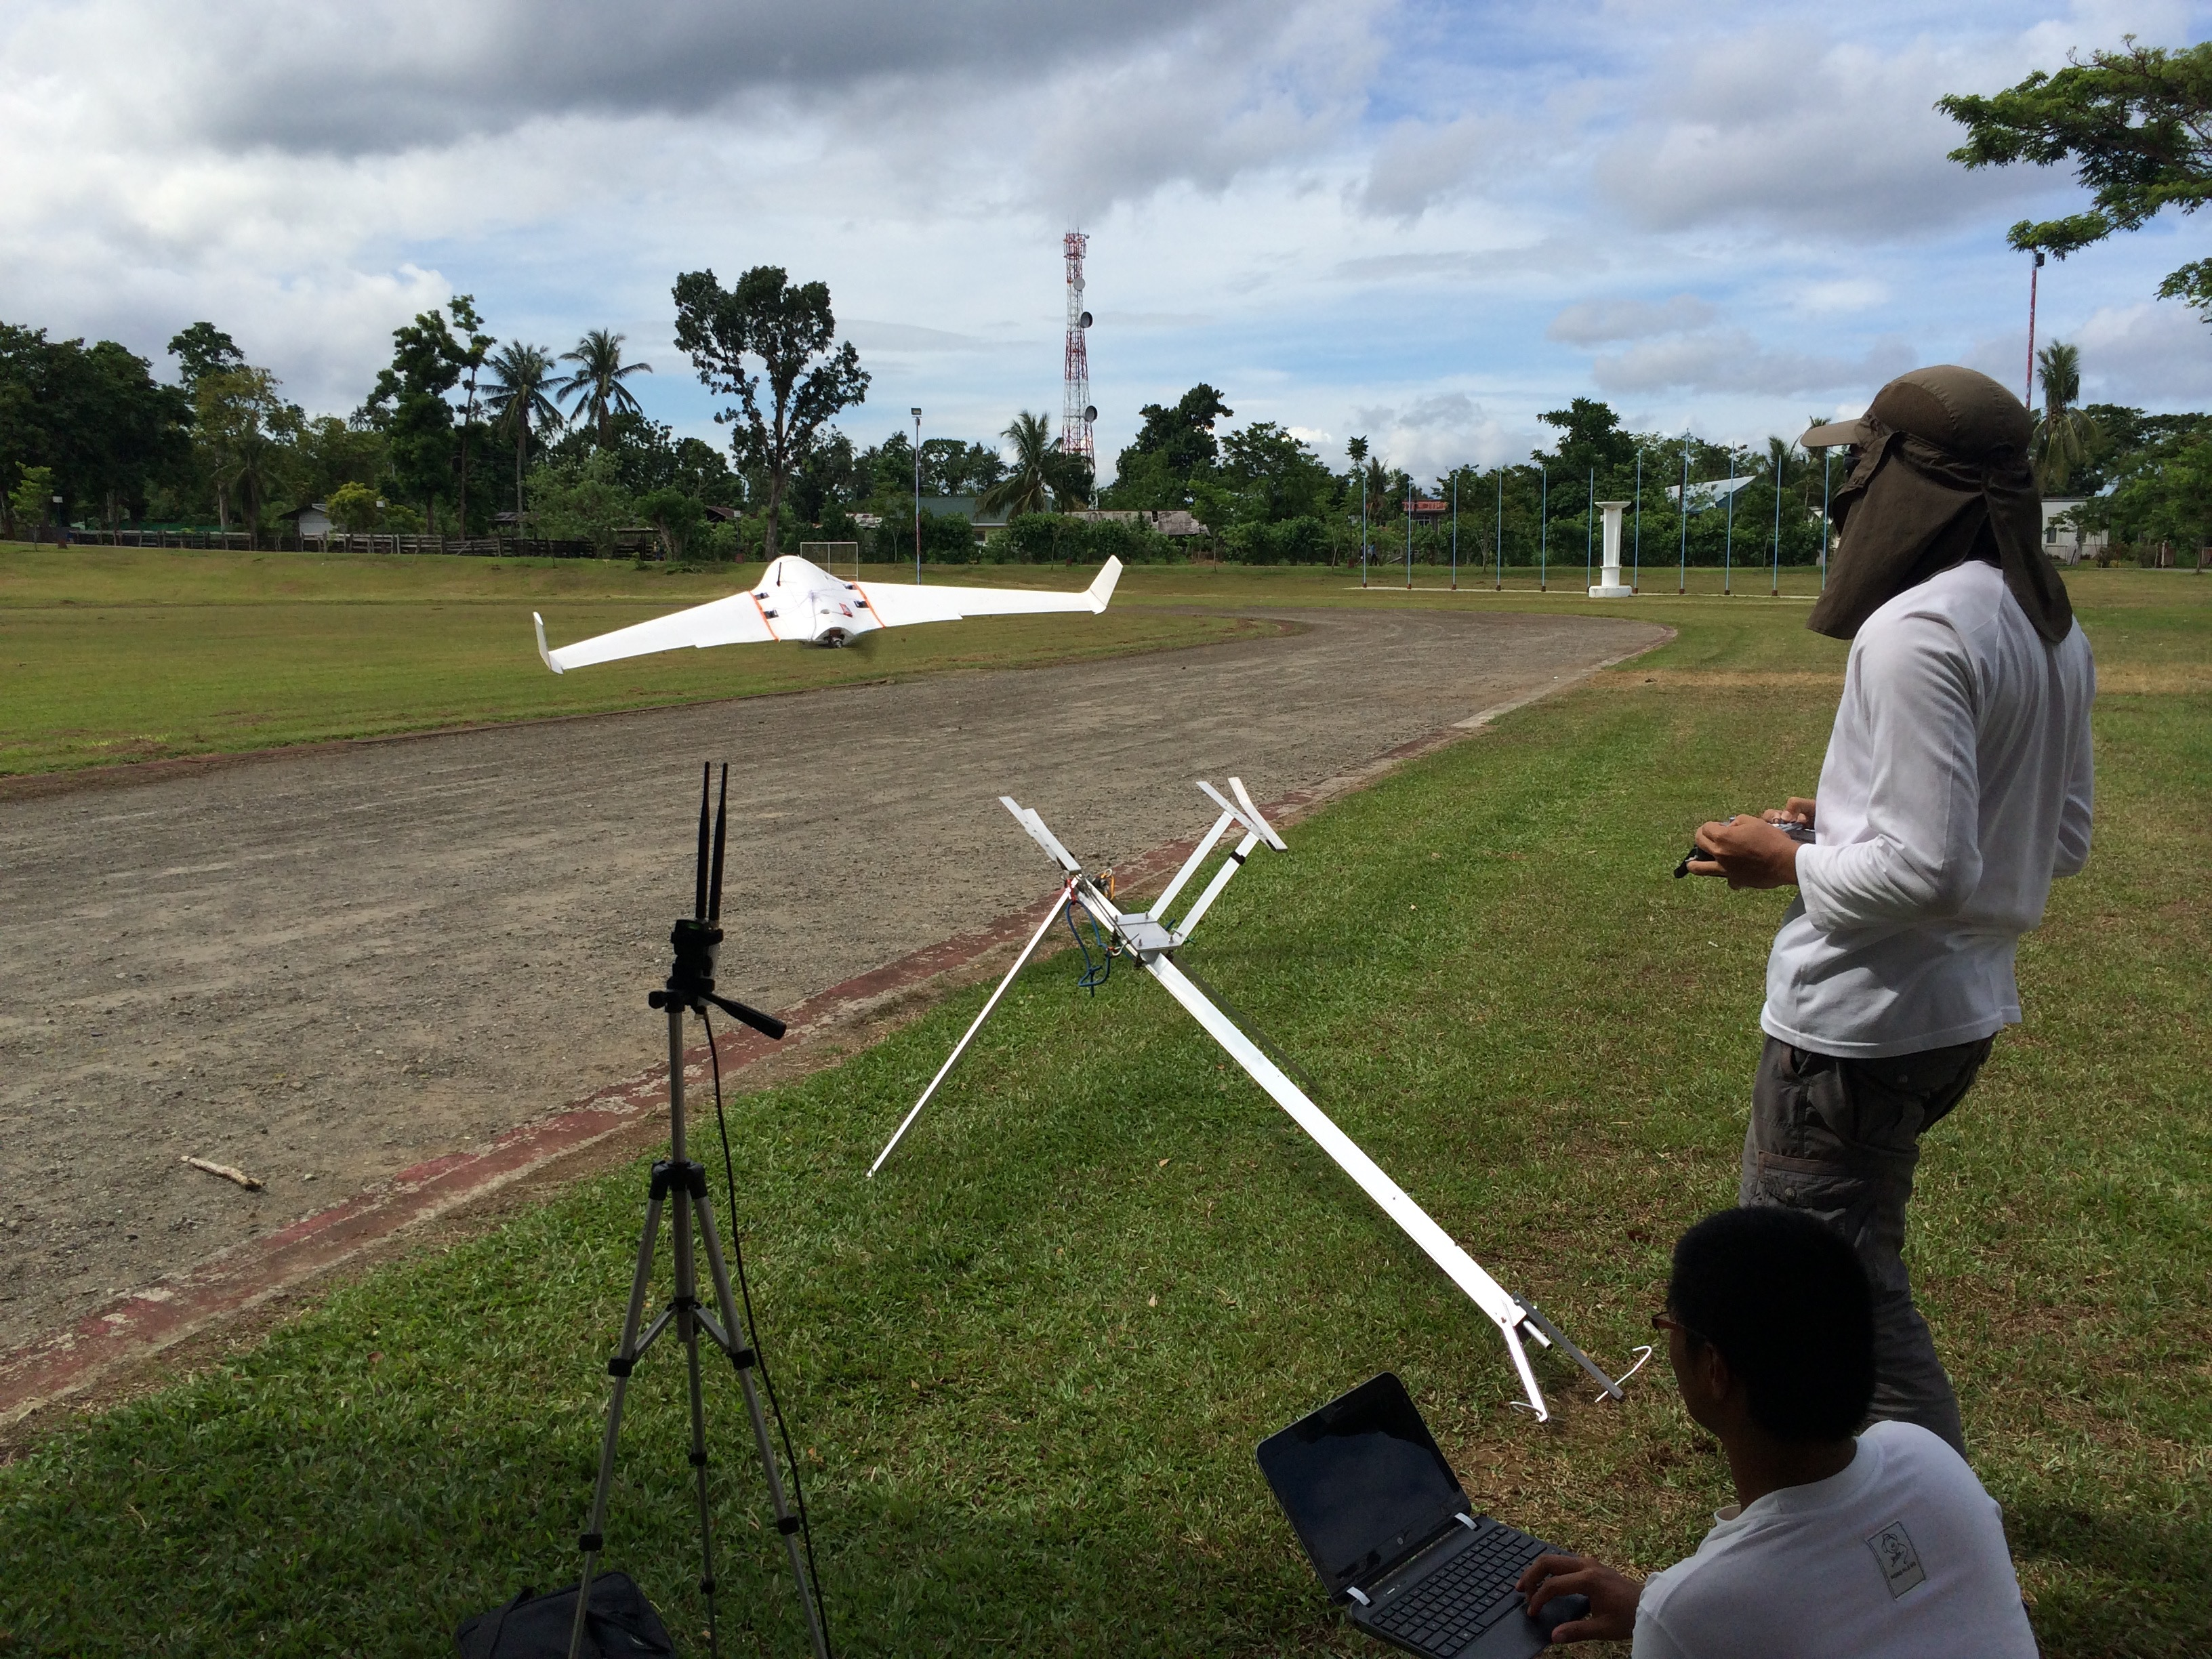 TAKING OFF. The drones range from 1.1 kg all the way to 25 kg on take-off weight u2013 meaning a full payload of infrared and hyper-spectral cameras and other specialized equipment, sensors, and fuel. Photo courtesy of Skyeye